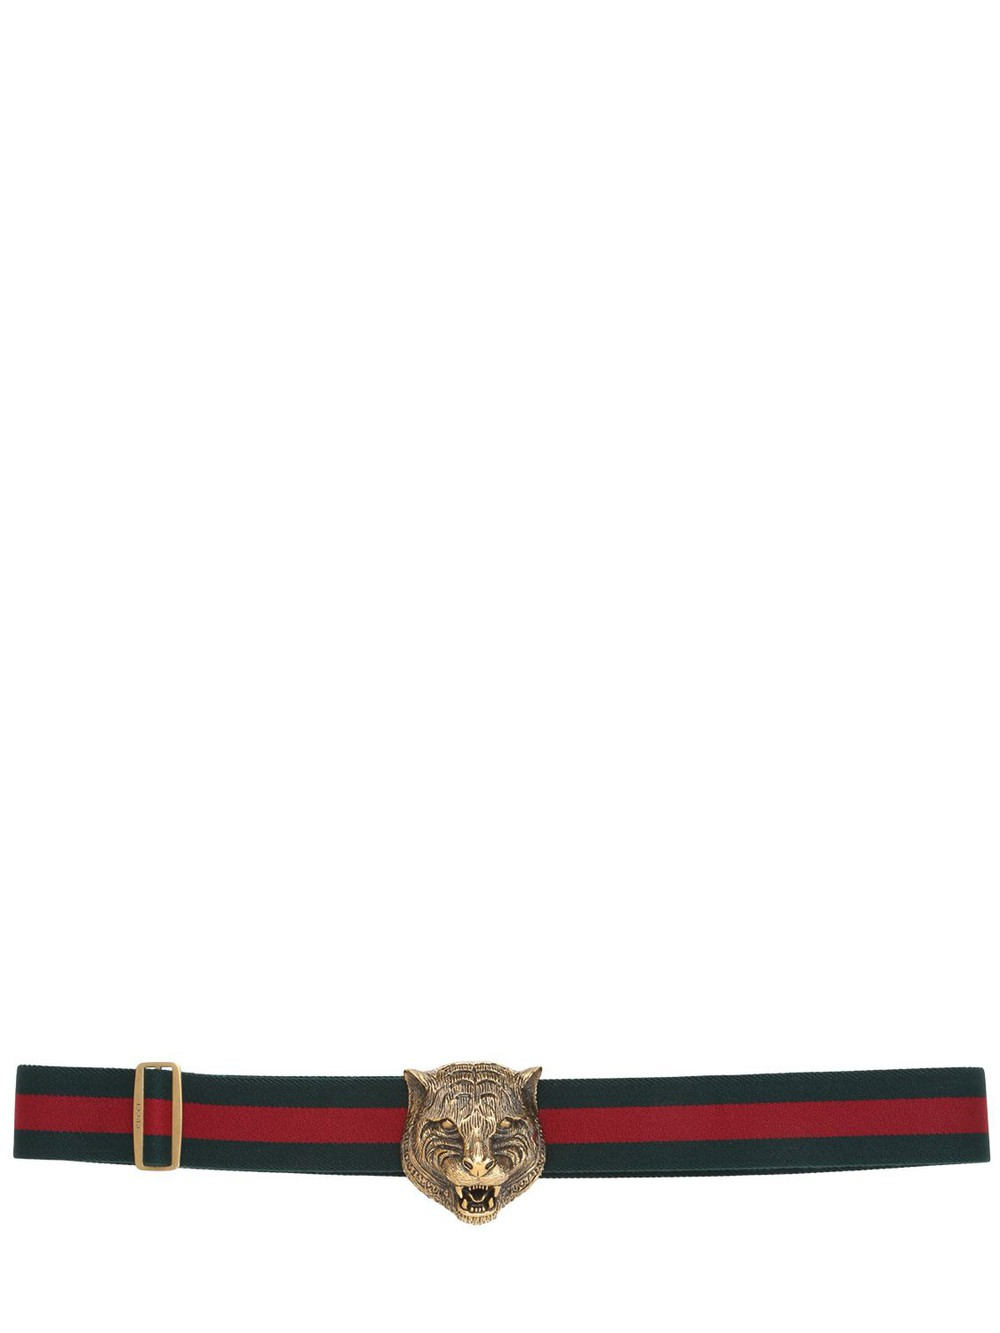 de9bab3454e Gucci Green and Red Classic Webbing Gg Belt - Wheretoget